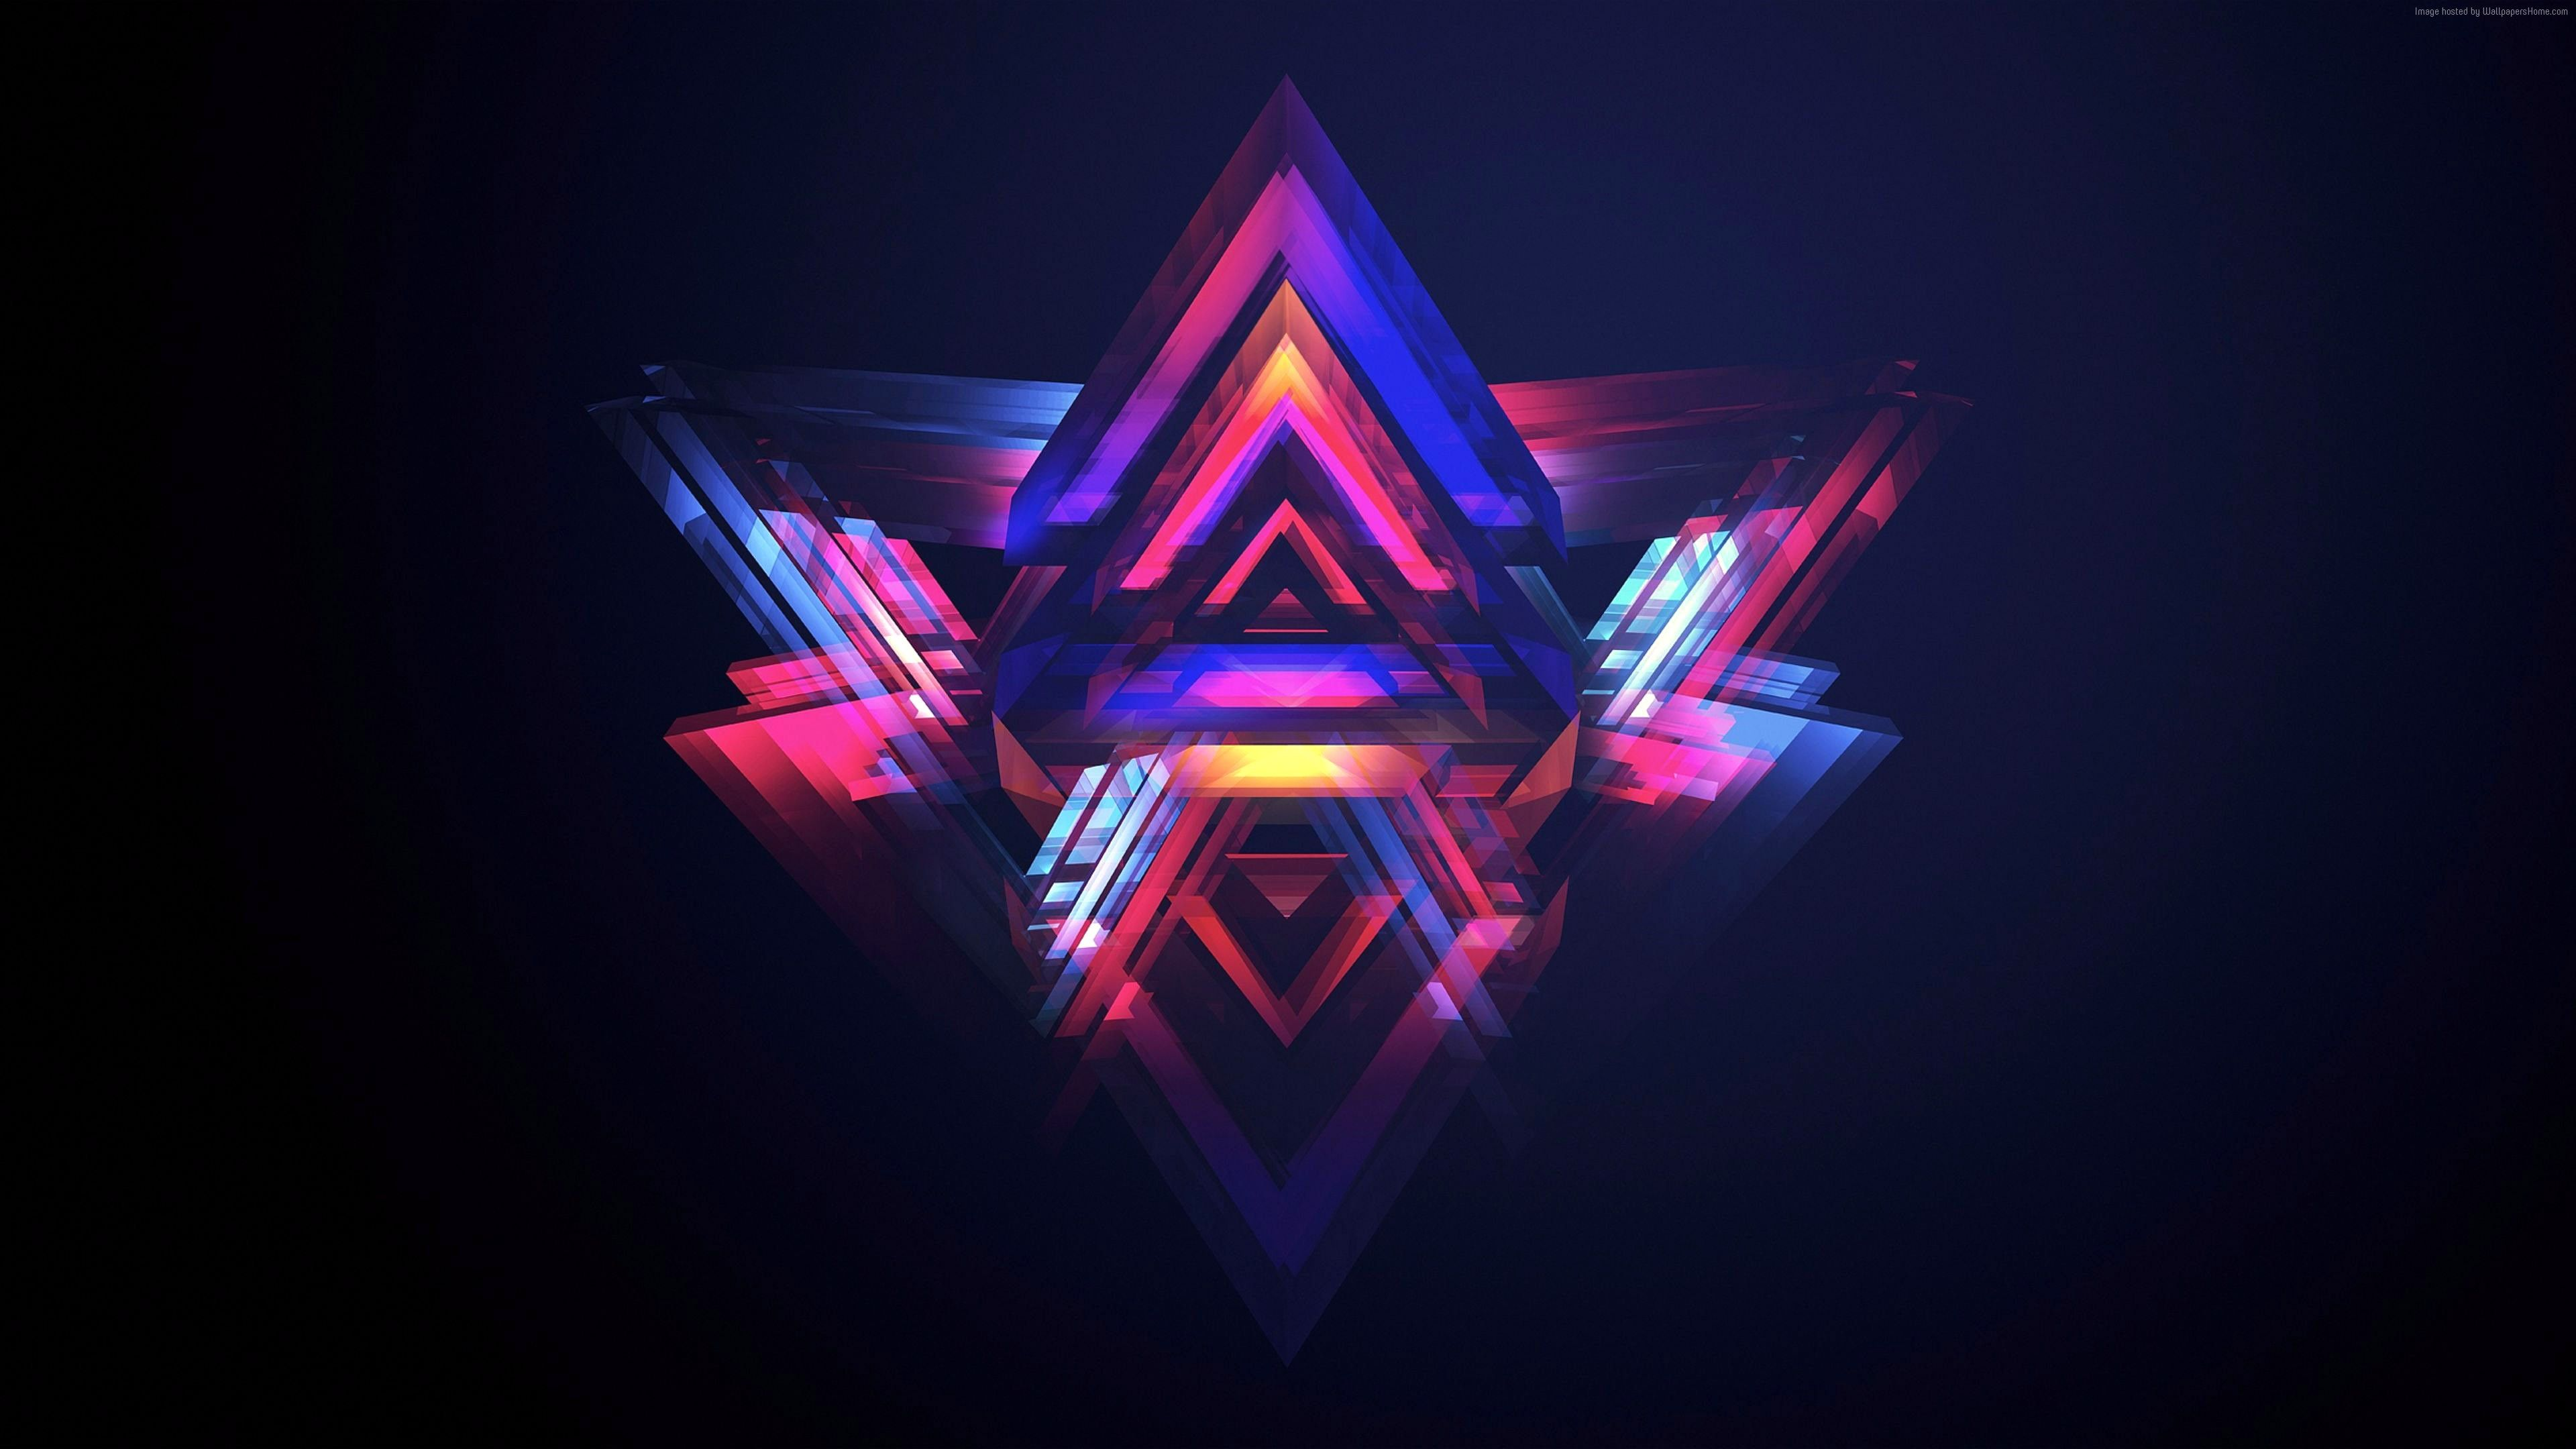 Hd Abstract Polygon Cool Desktop Backgrounds 2048x1152 Wallpapers Abstract Wallpaper